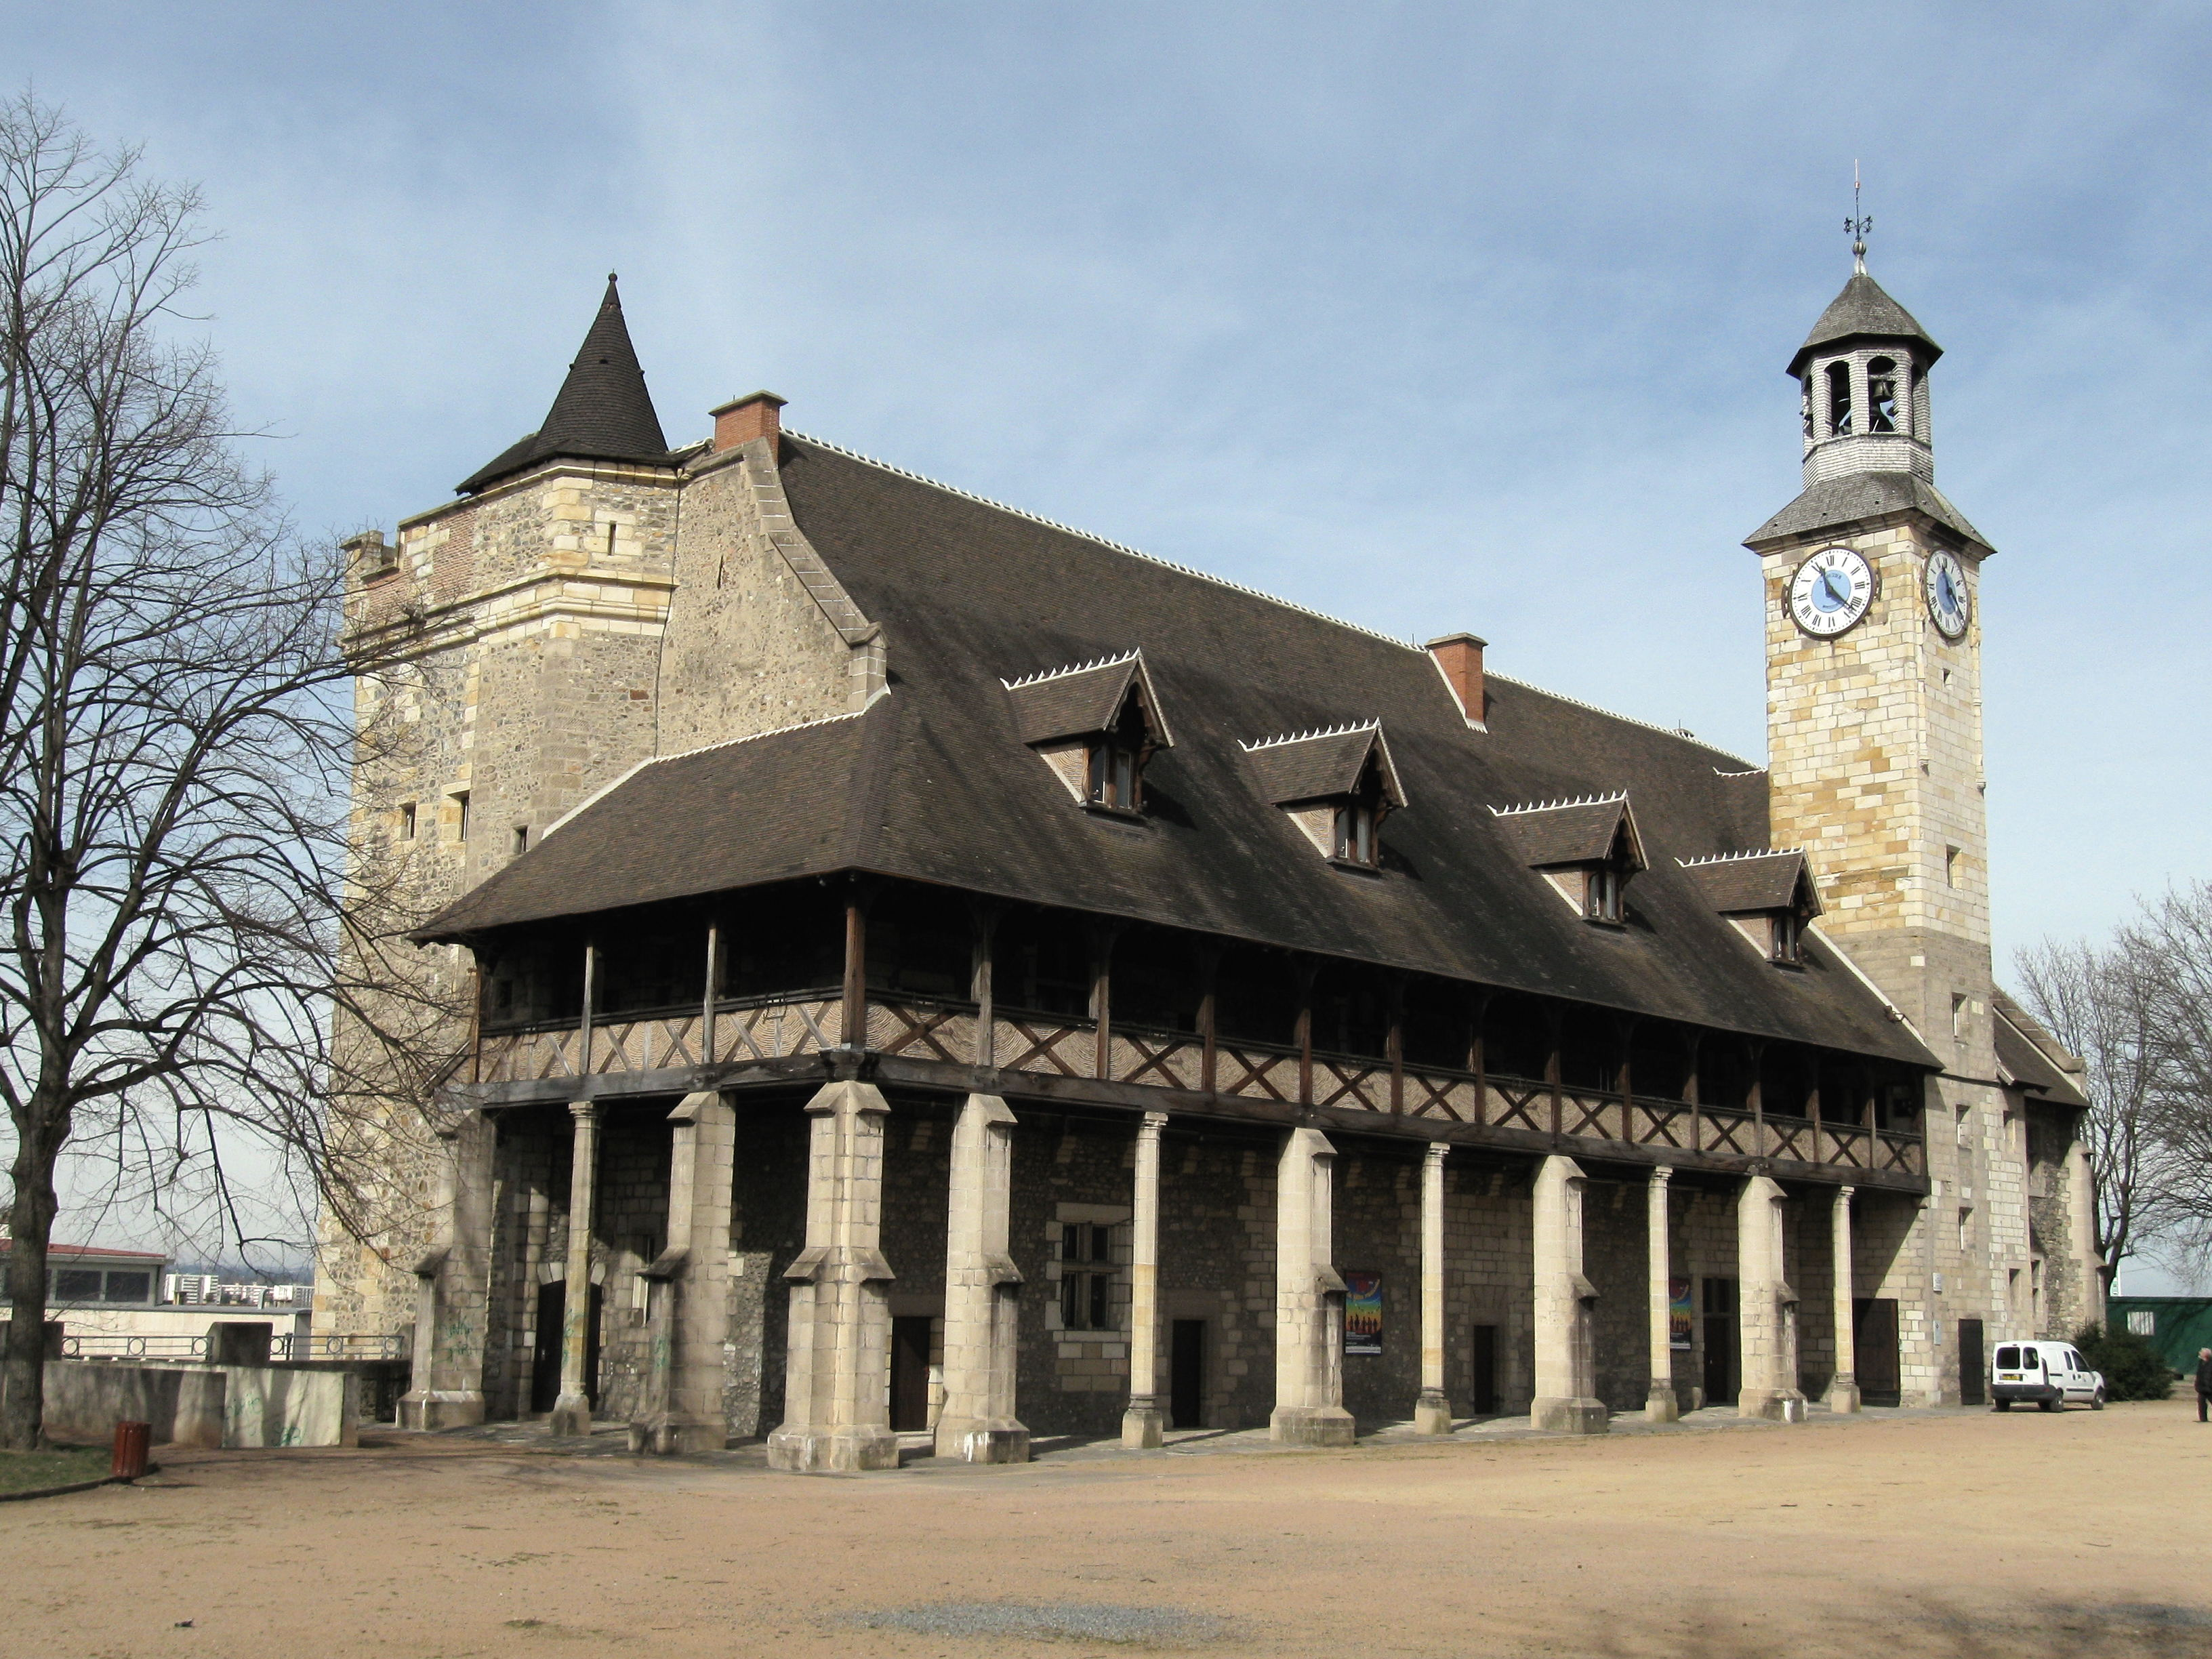 Montlucon France  city pictures gallery : Montluçon château 3 Wikipedia, the free encyclopedia